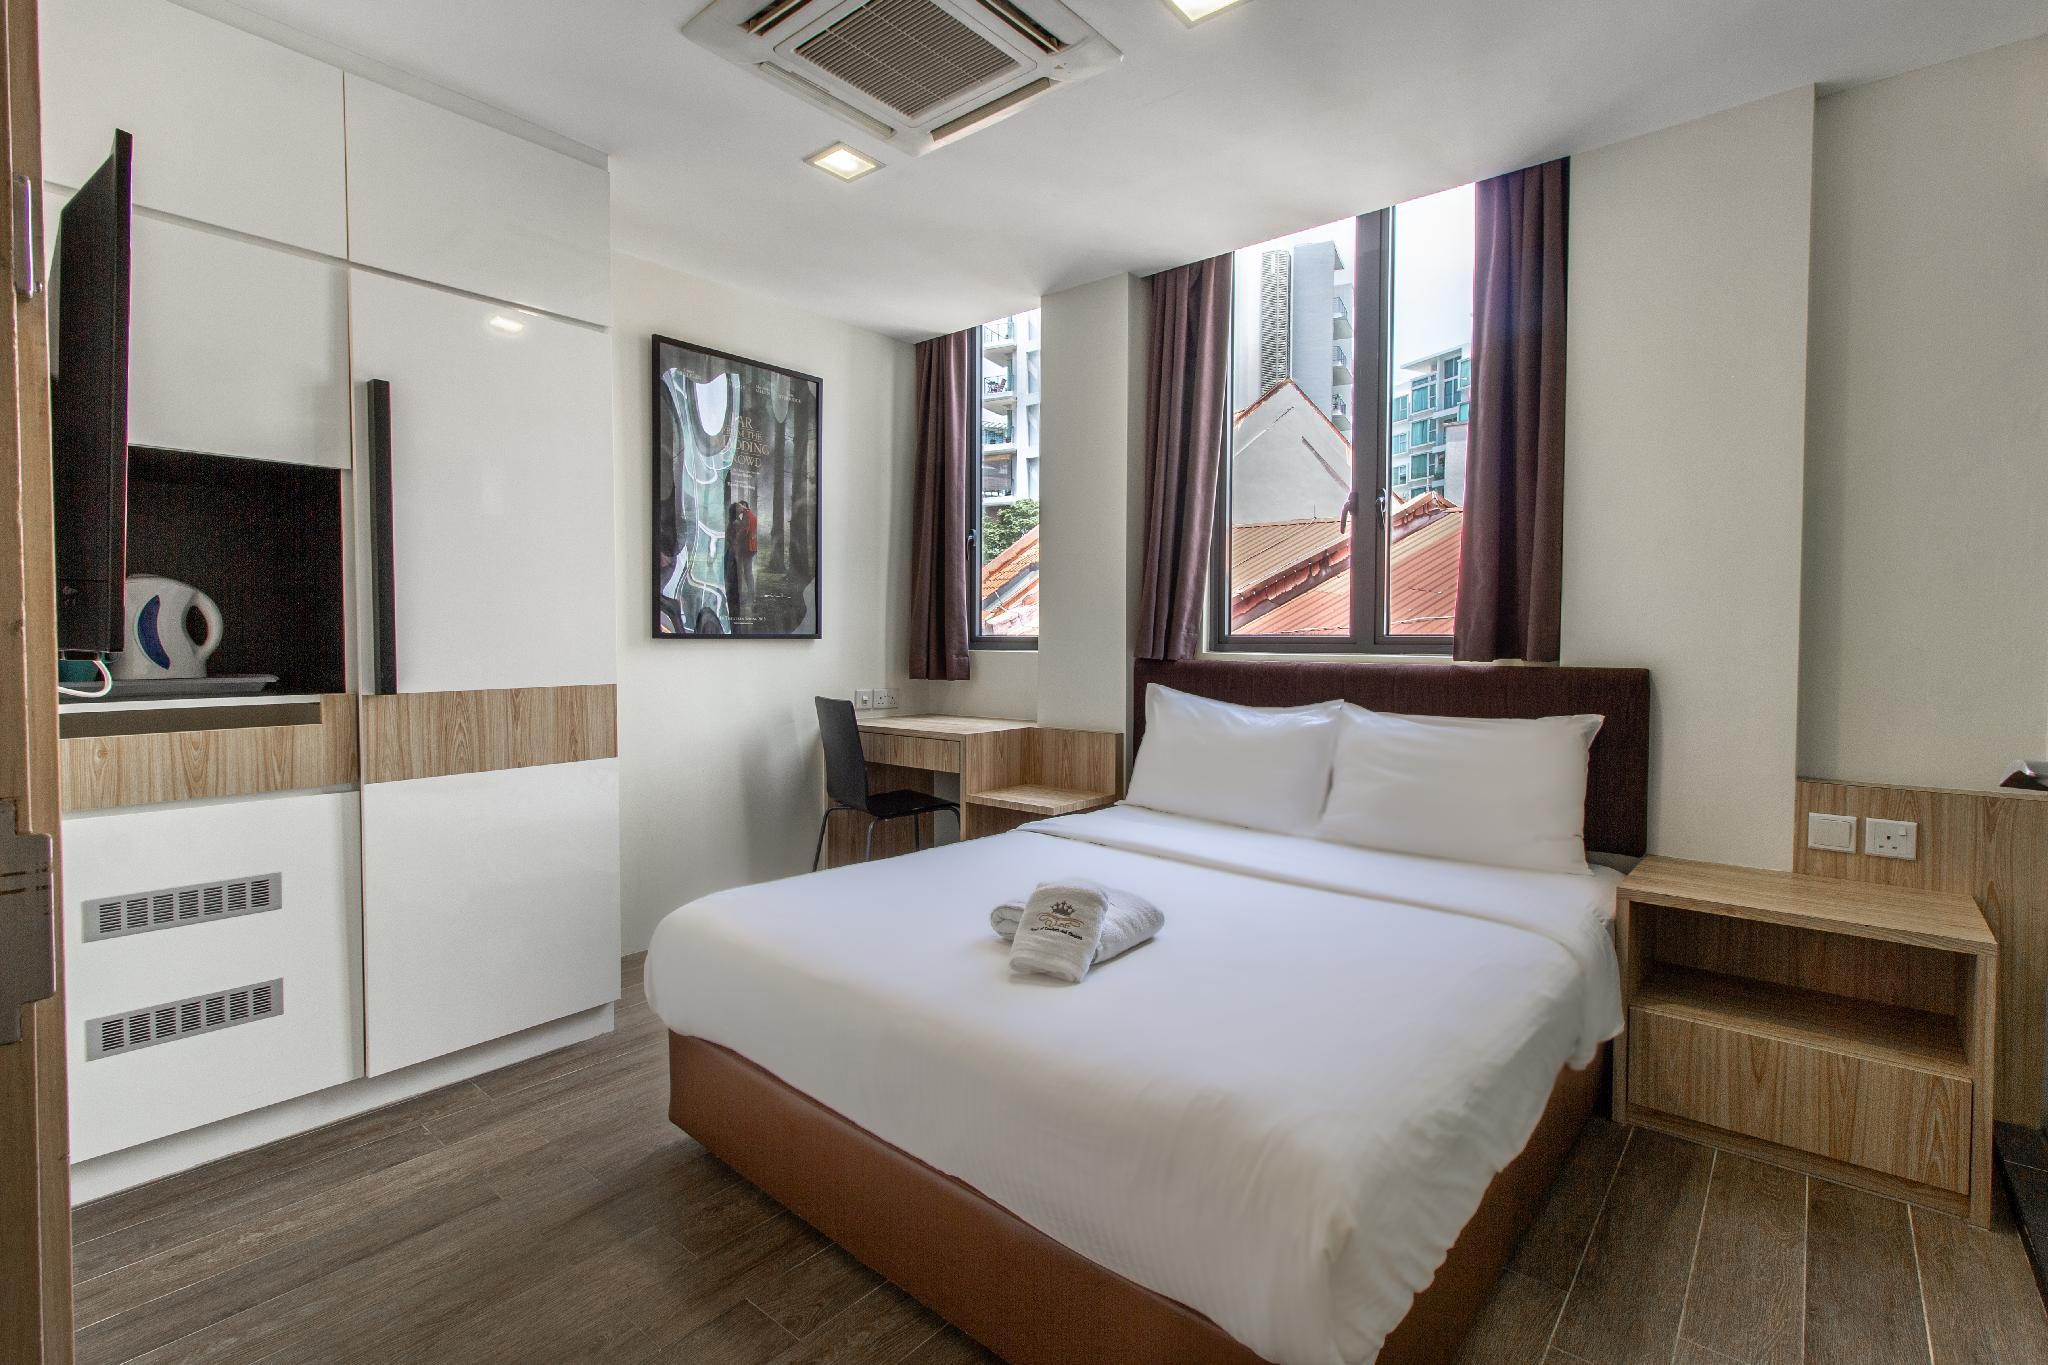 Q Loft Hotels@Mackenzie (SG Clean Certified & Staycation Approved)